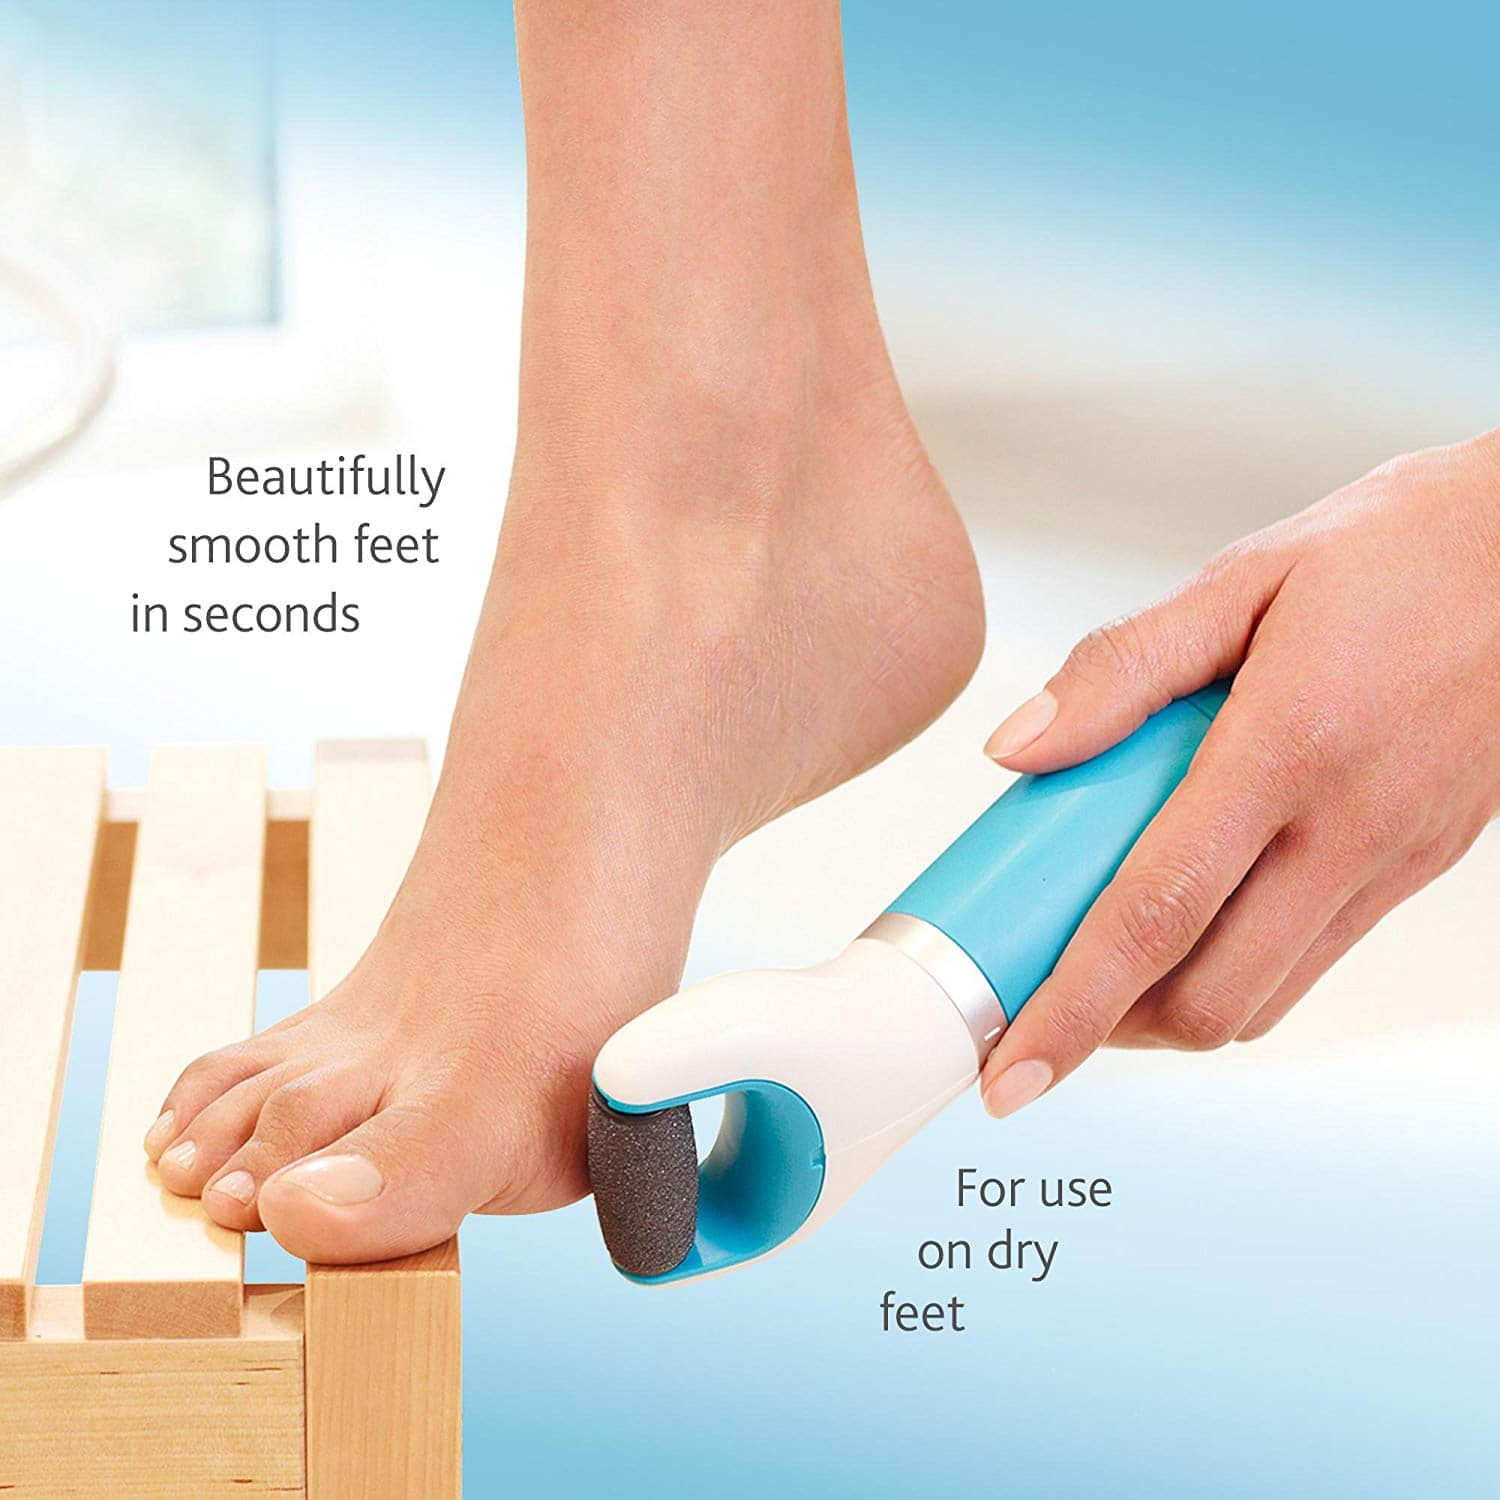 Amope Pedi Perfect Electronic Foot File for Hard and Dead Skin